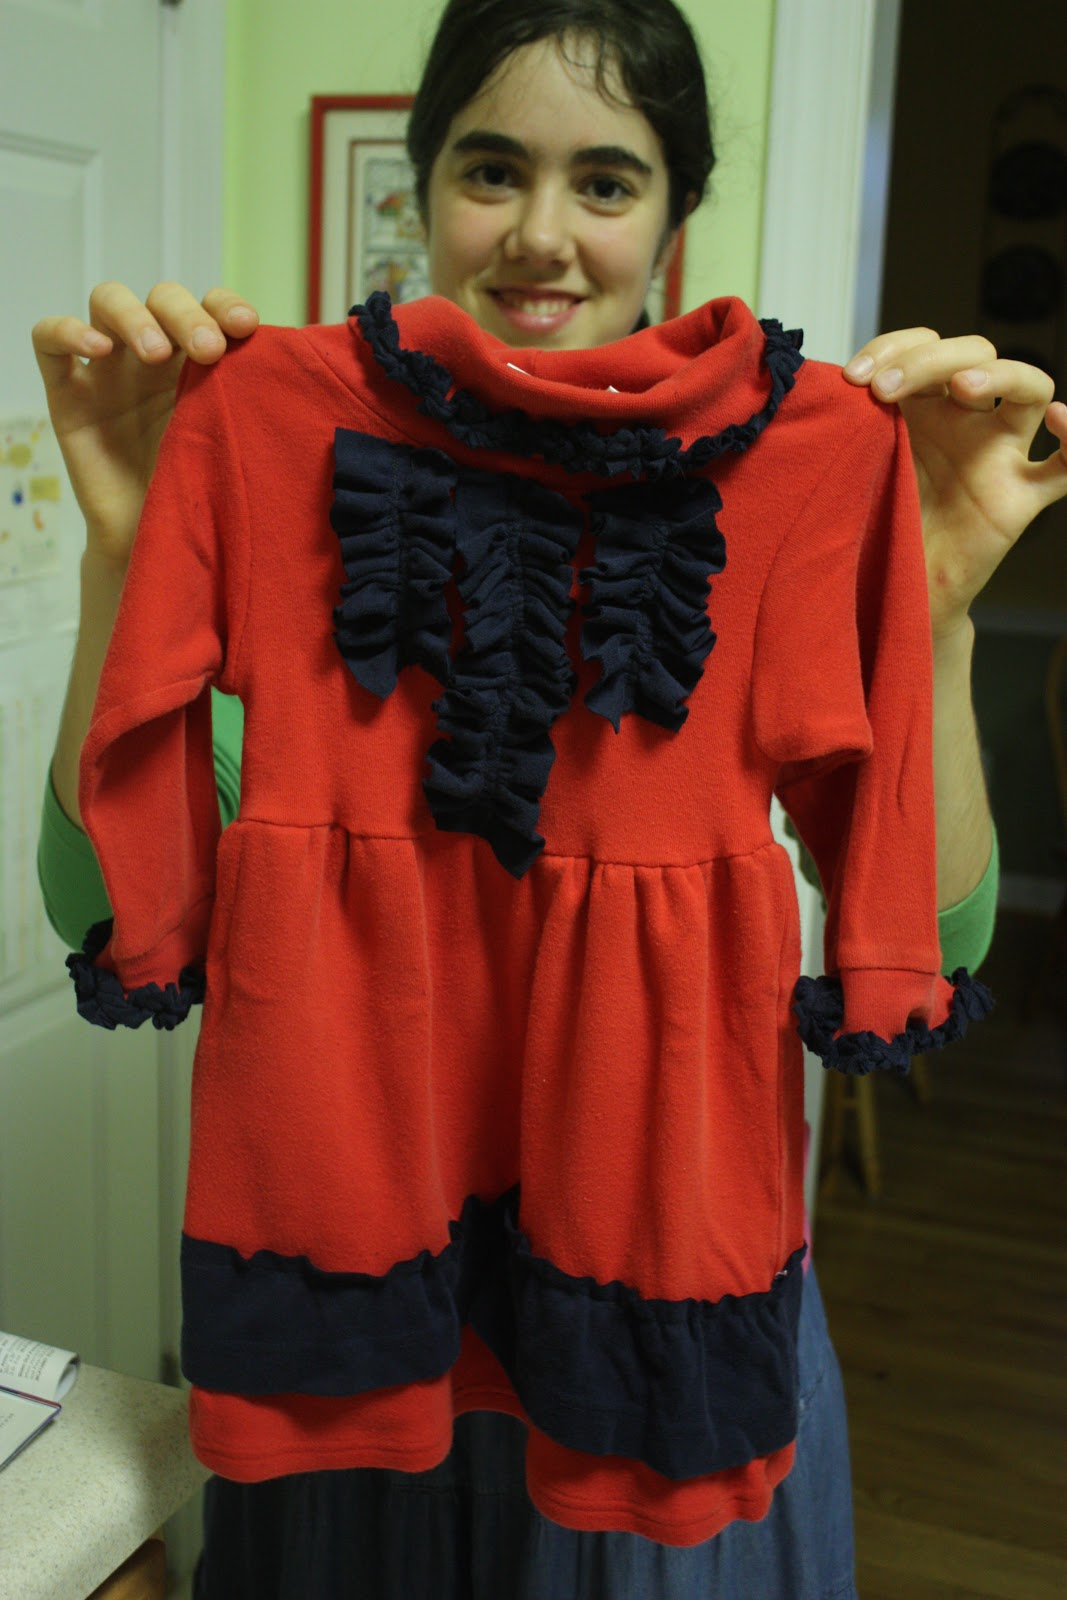 ... Legend of a Seamstress: Tutorial Tuesday: Turtleneck to Toddler Dress